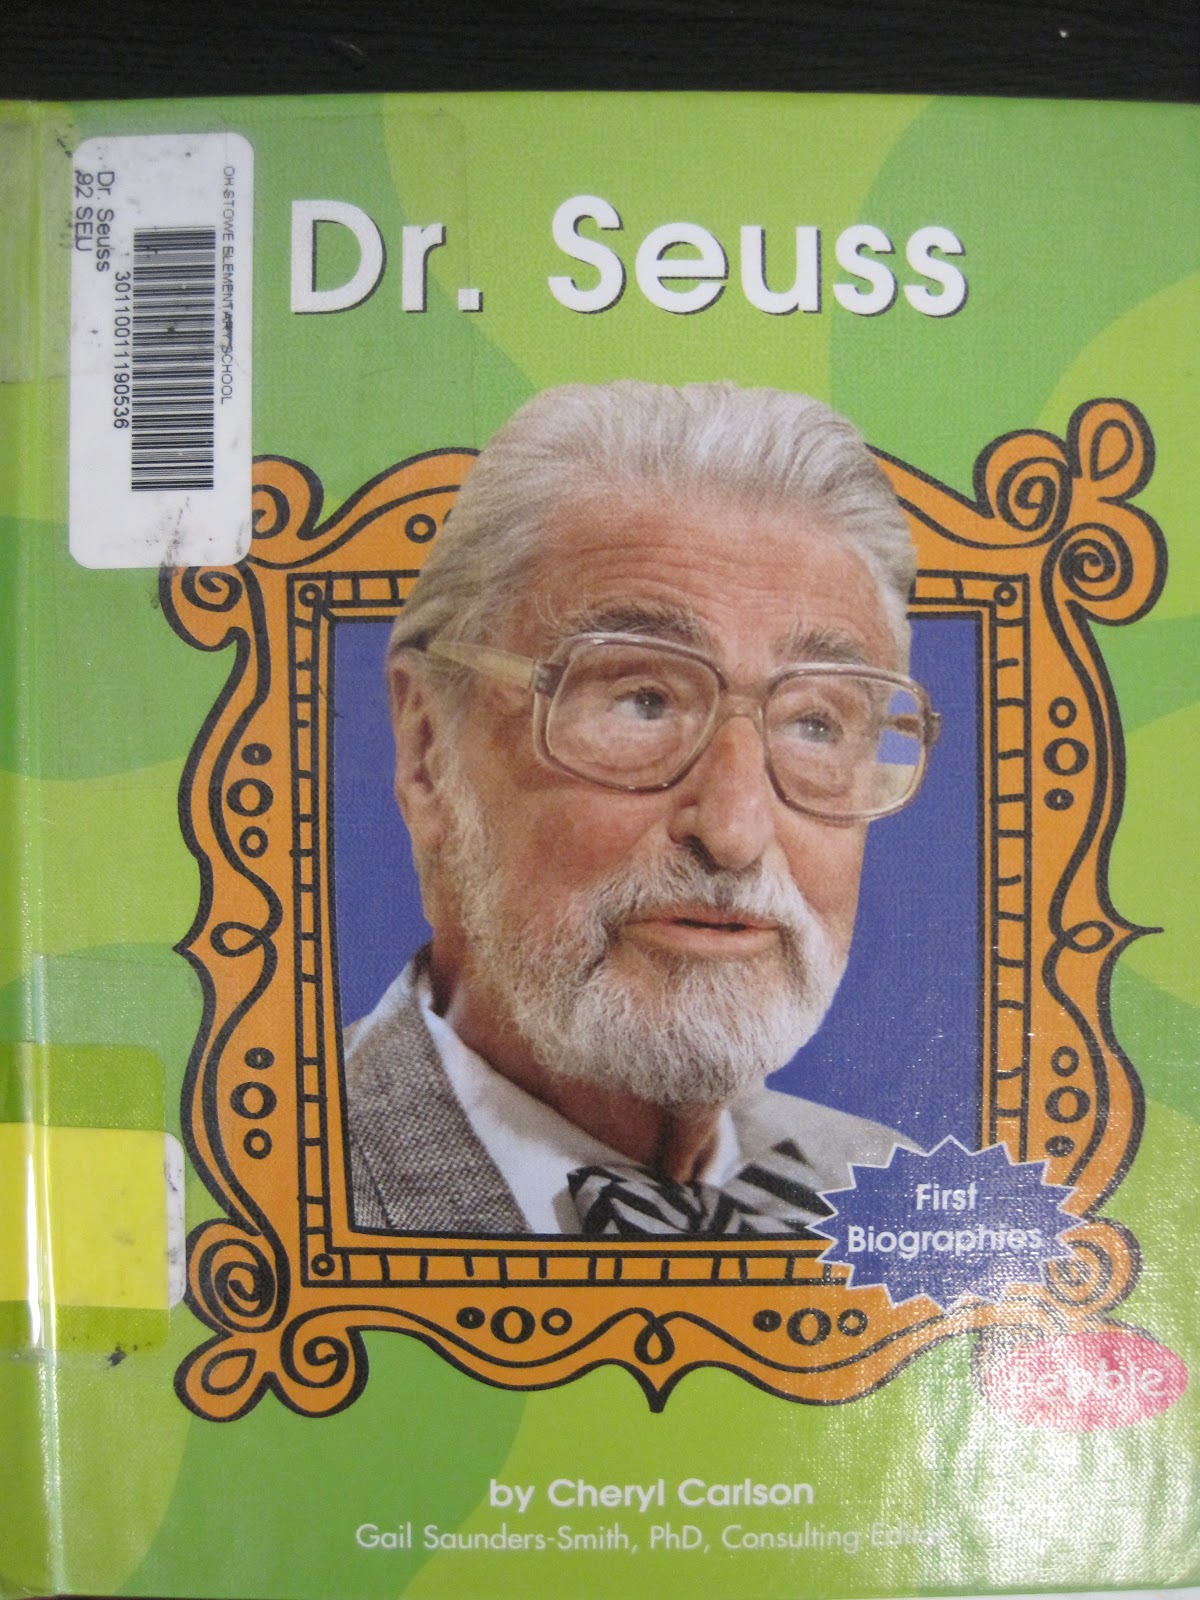 biography of dr